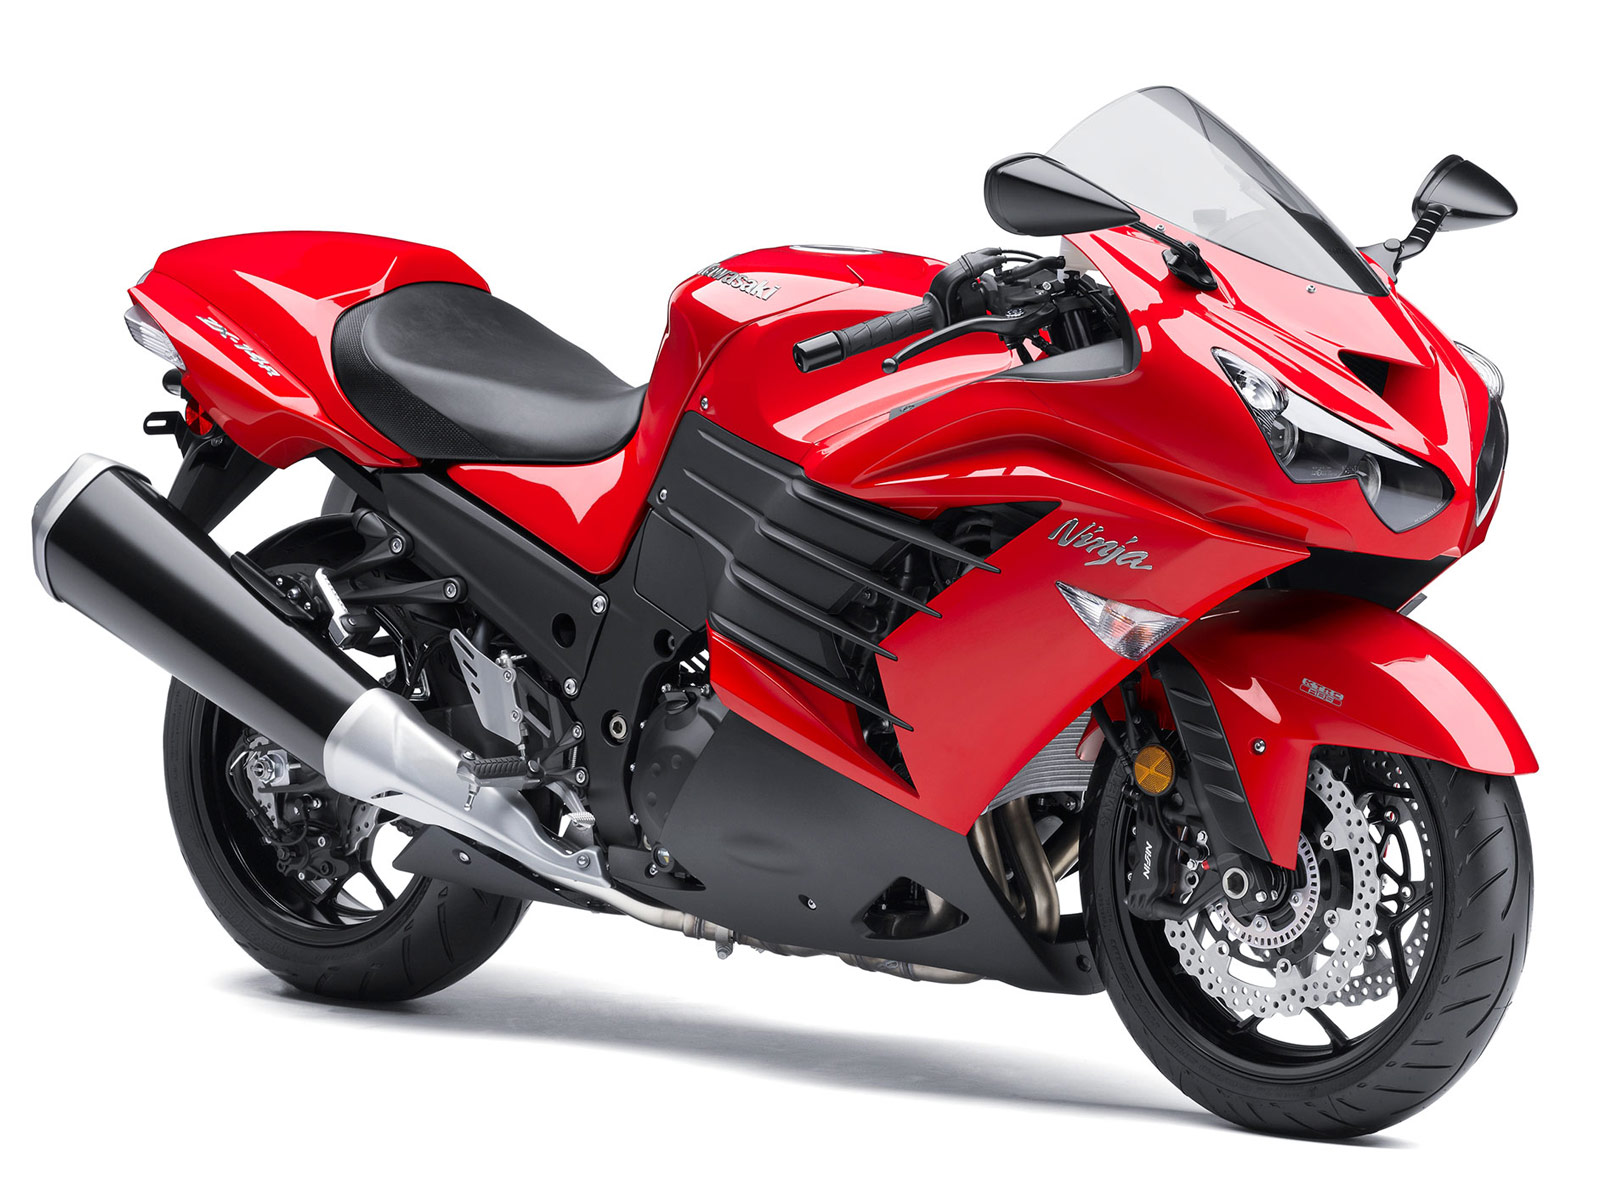 2013 Kawasaki Ninja ZX14R ABS pictures insurance information